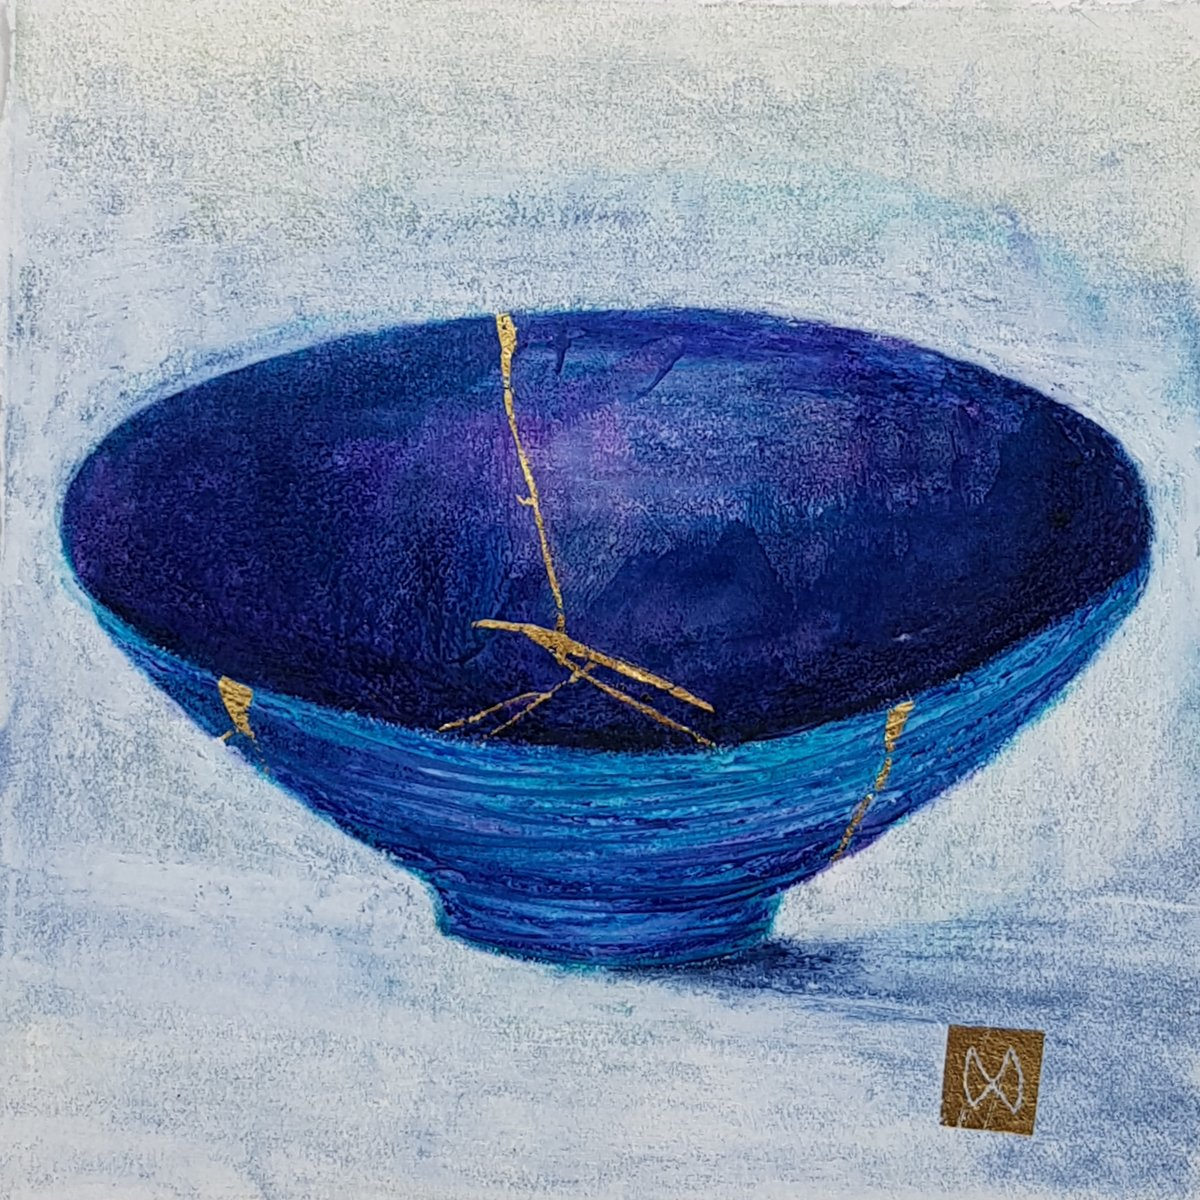 painting of Japanese kintsugi Summer tea bowl with gold by Irish artist blue purple